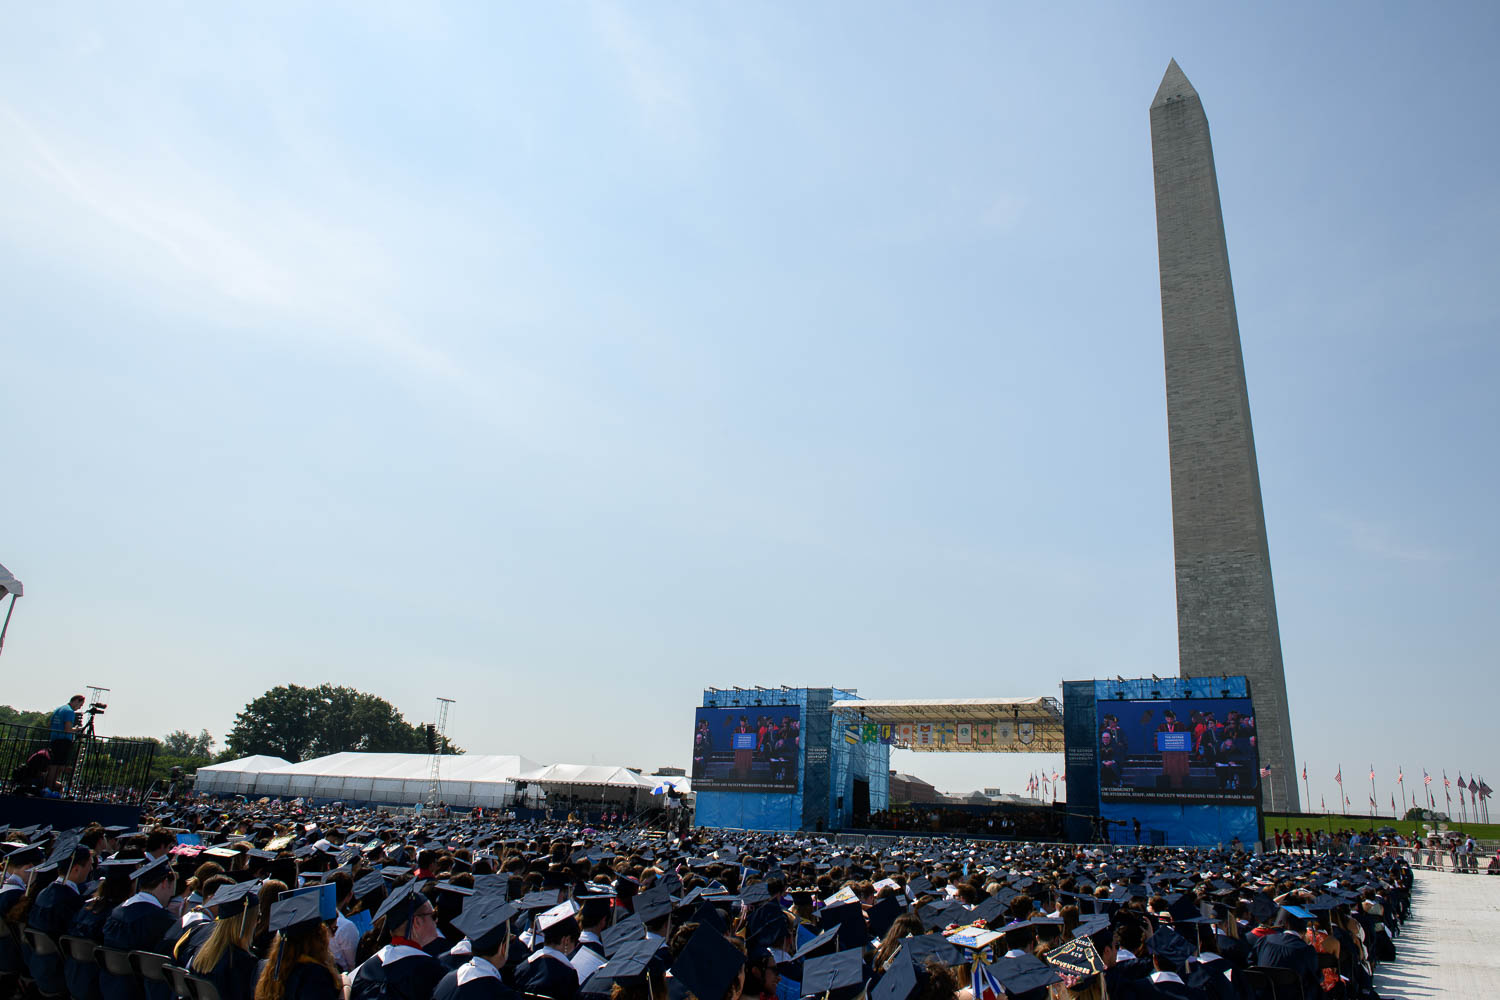 Washington Monument in background of Commencement stage with Guthrie speaking at podium